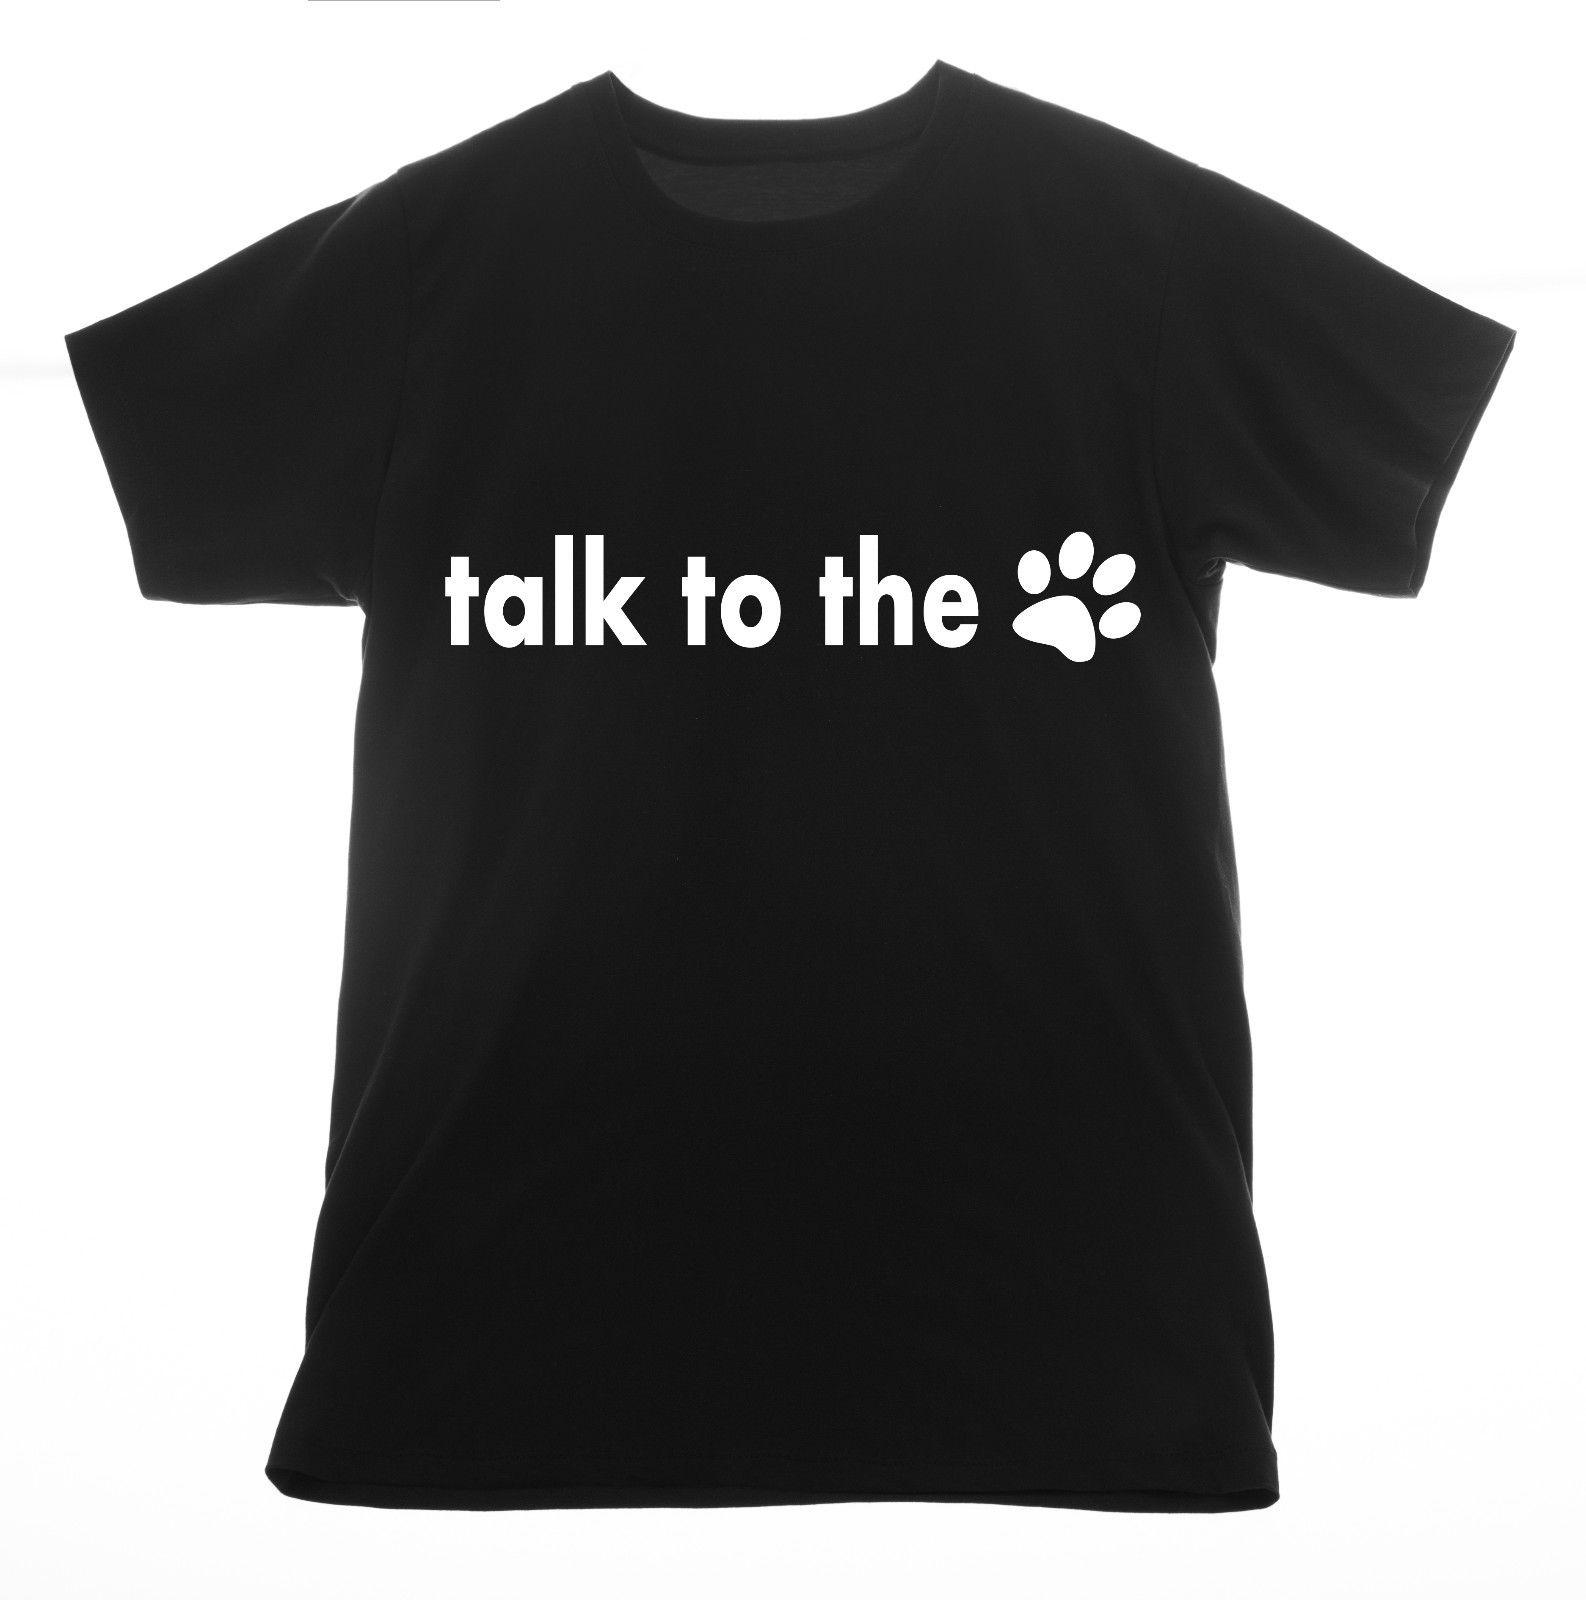 2c0ca113a37f Talk To The Paw Print T Shirt Clothing Tee T Shirt Printed Screen Cat Dog  Animal Men Women Unisex Fashion Tshirt Black Funny Cool Shirts Be Awesome T  Shirt ...